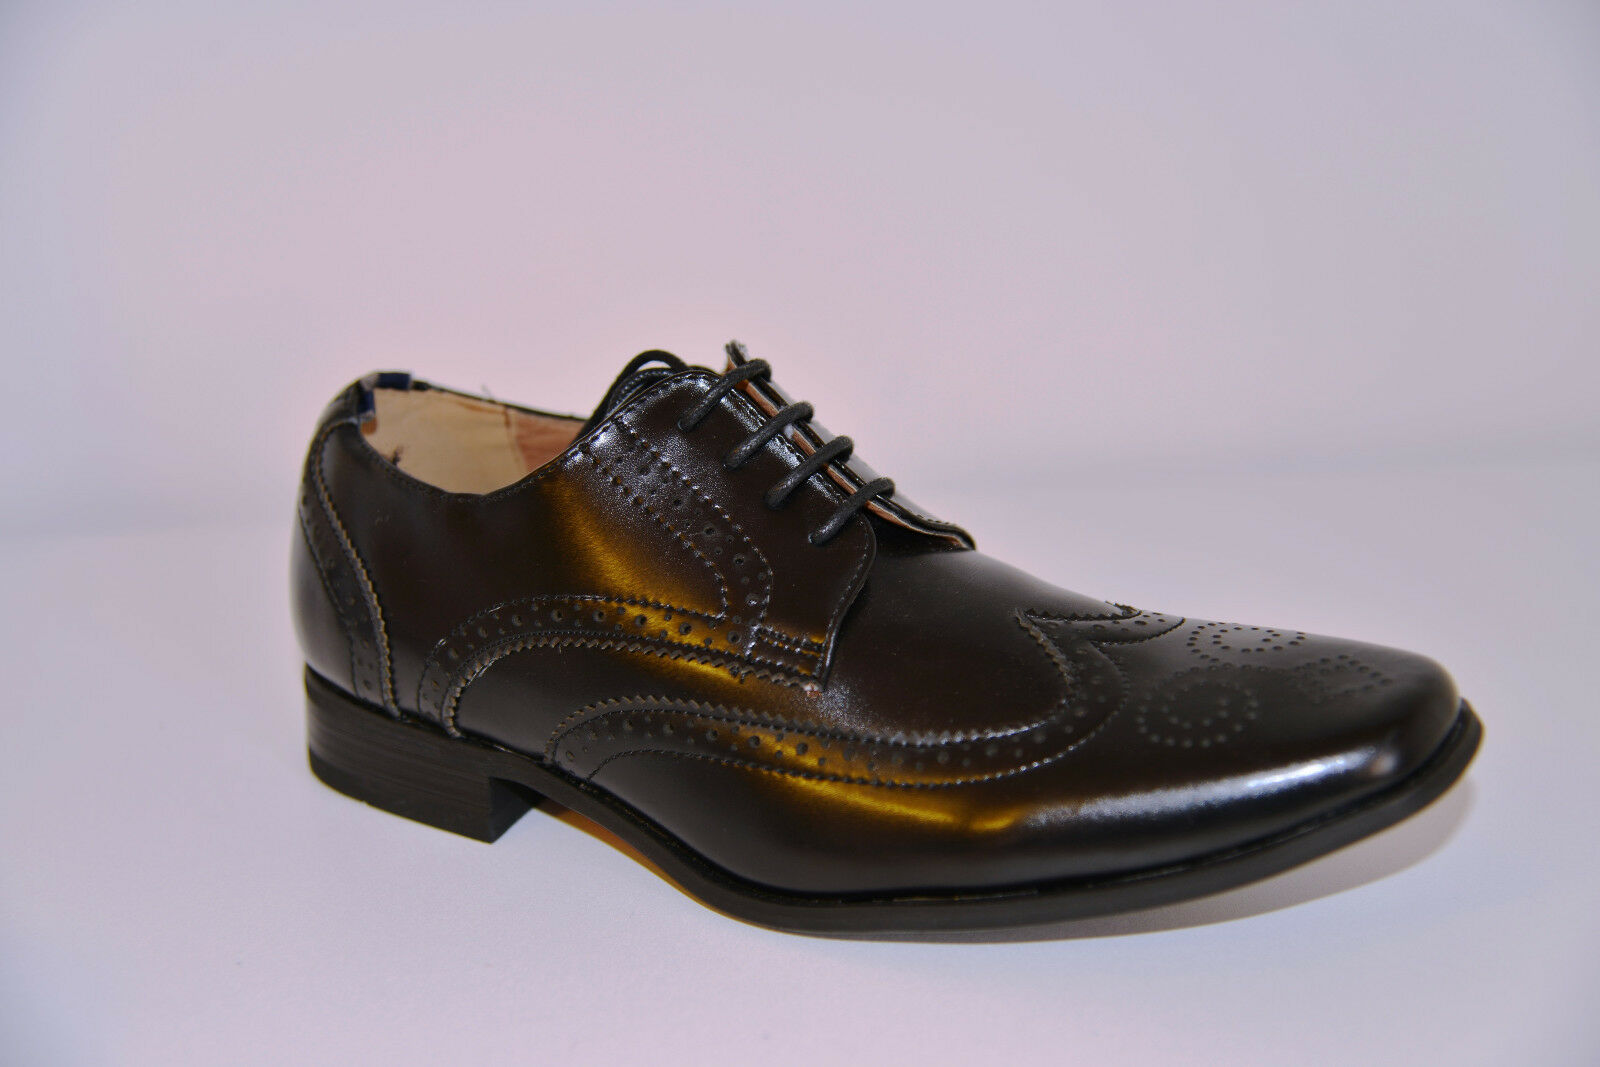 NUOVO Peter Werth PTK00406 CALATA Oxford Stile Mocassino in Pelle Nera   Eleganti